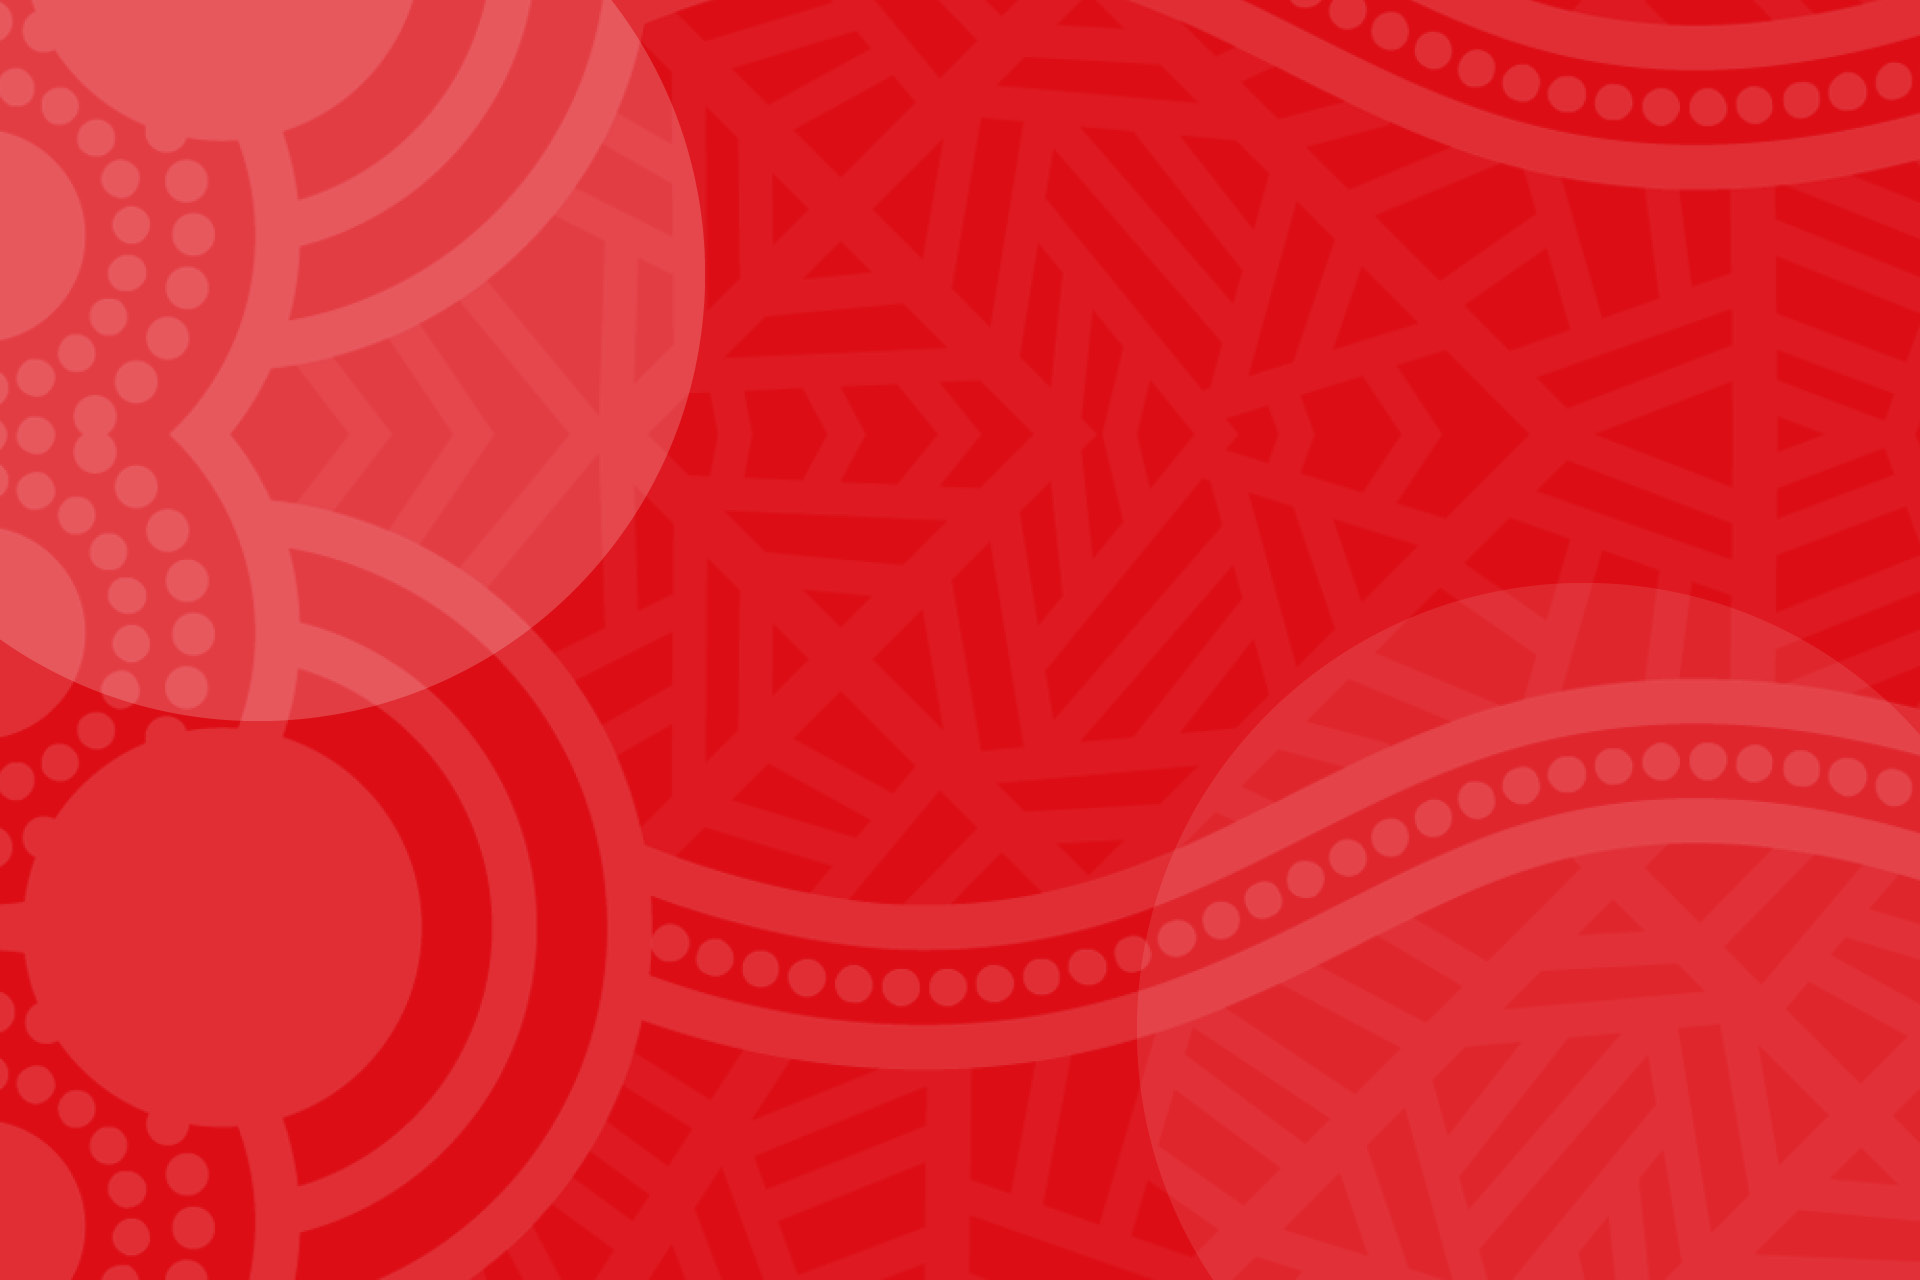 https://www.naidoc.org.au/sites/default/files/revslider/image/NAIDOC%20web%20background%20-%20red.jpg